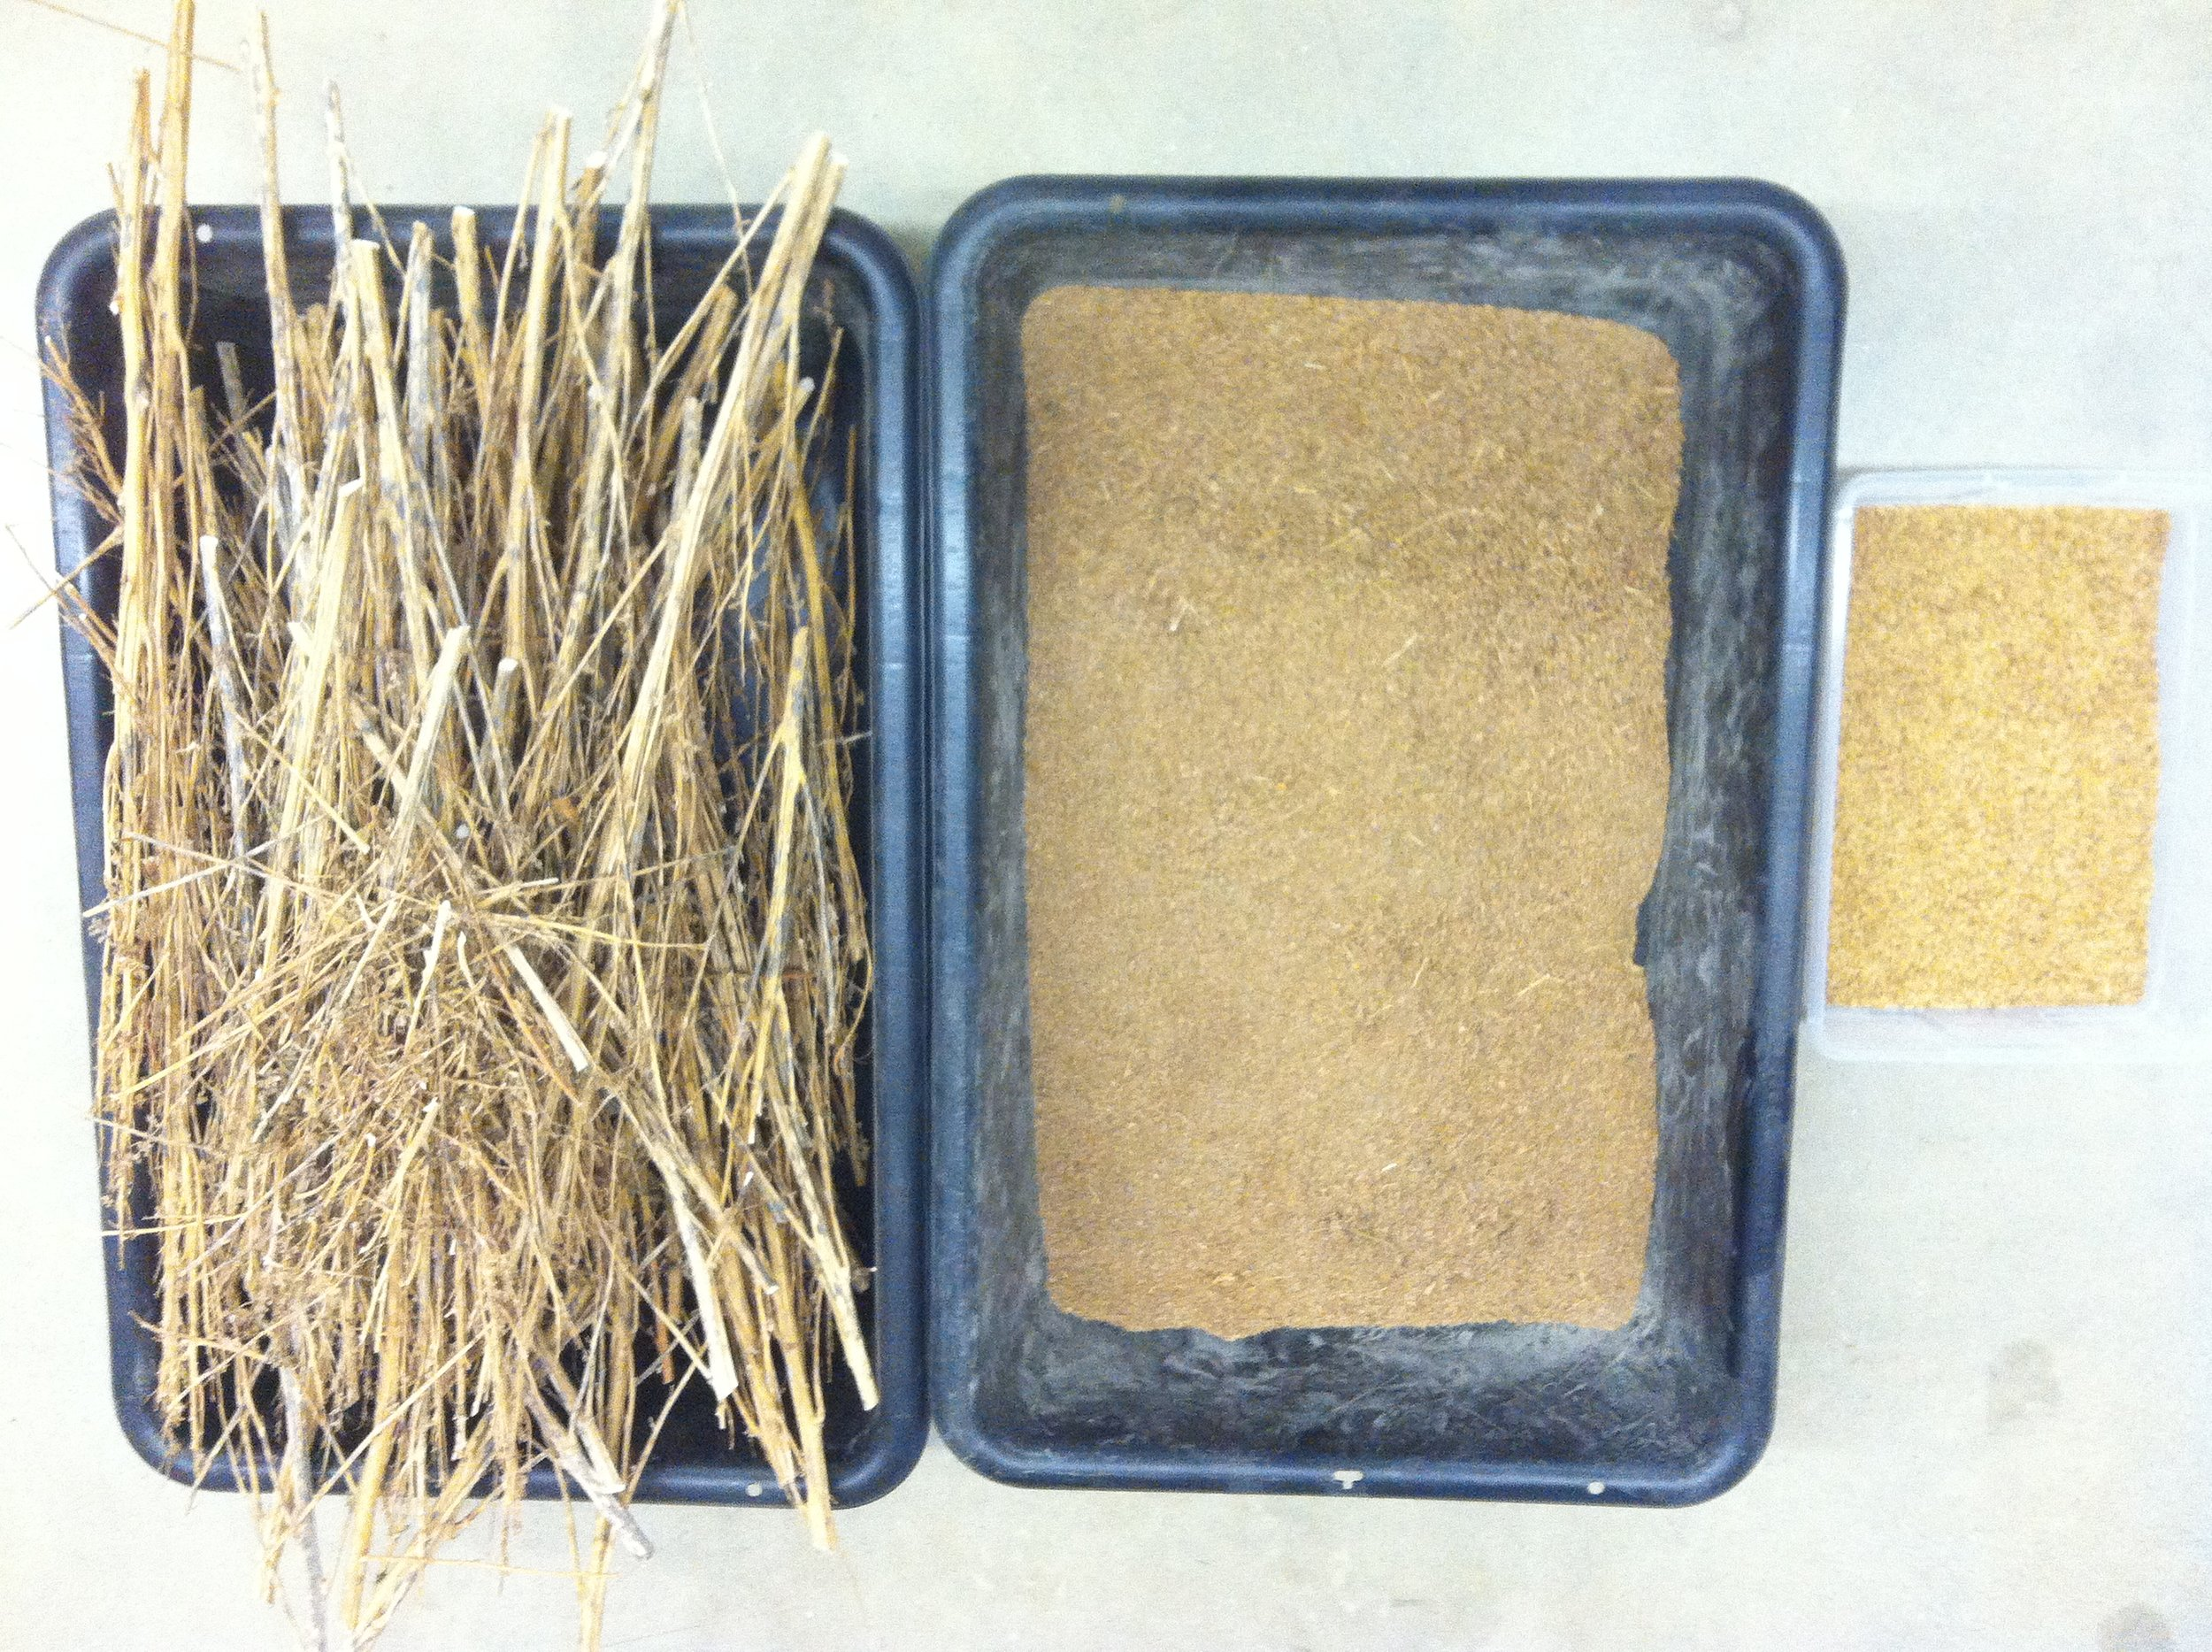 L- stalks after threshing. M- chaff after winnowing. R- seeds after winnowing.